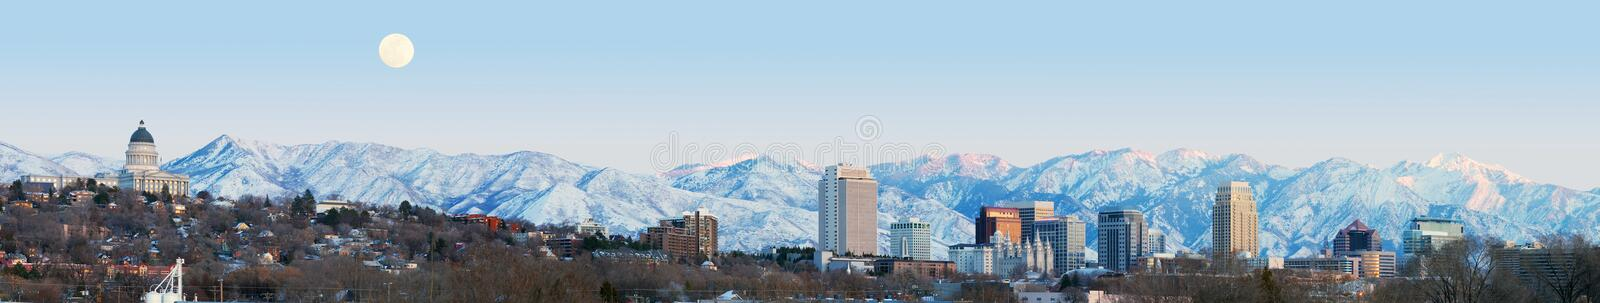 Salt Lake City przy sanset panoramą z Capitol budynkiem Solankowy los angeles obrazy royalty free